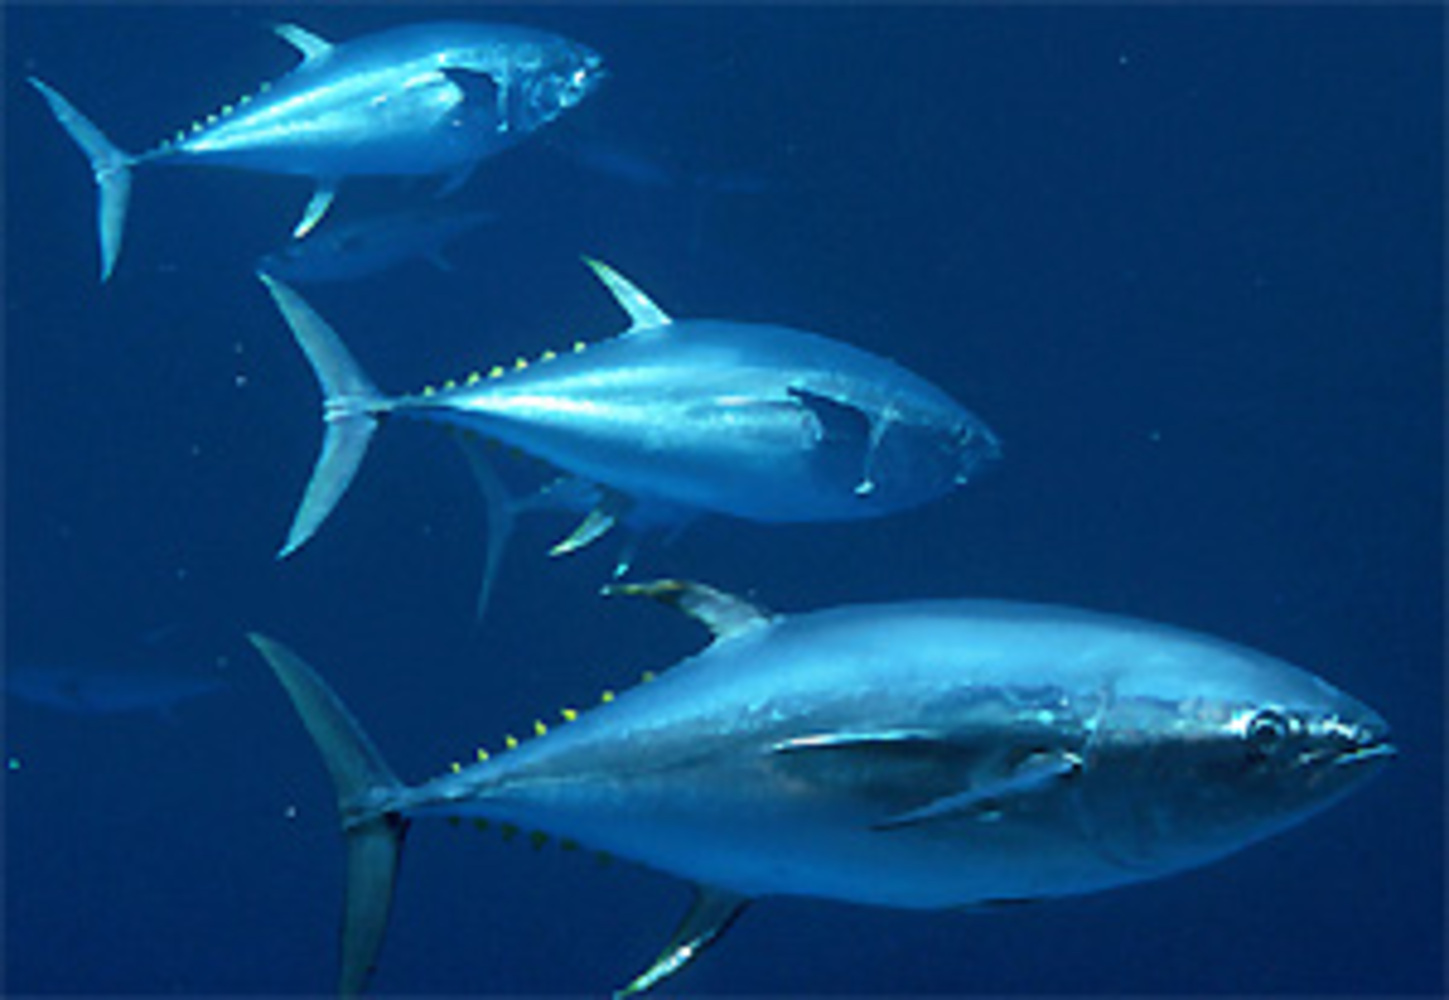 Yellowfin tuna, Thunnus albacares